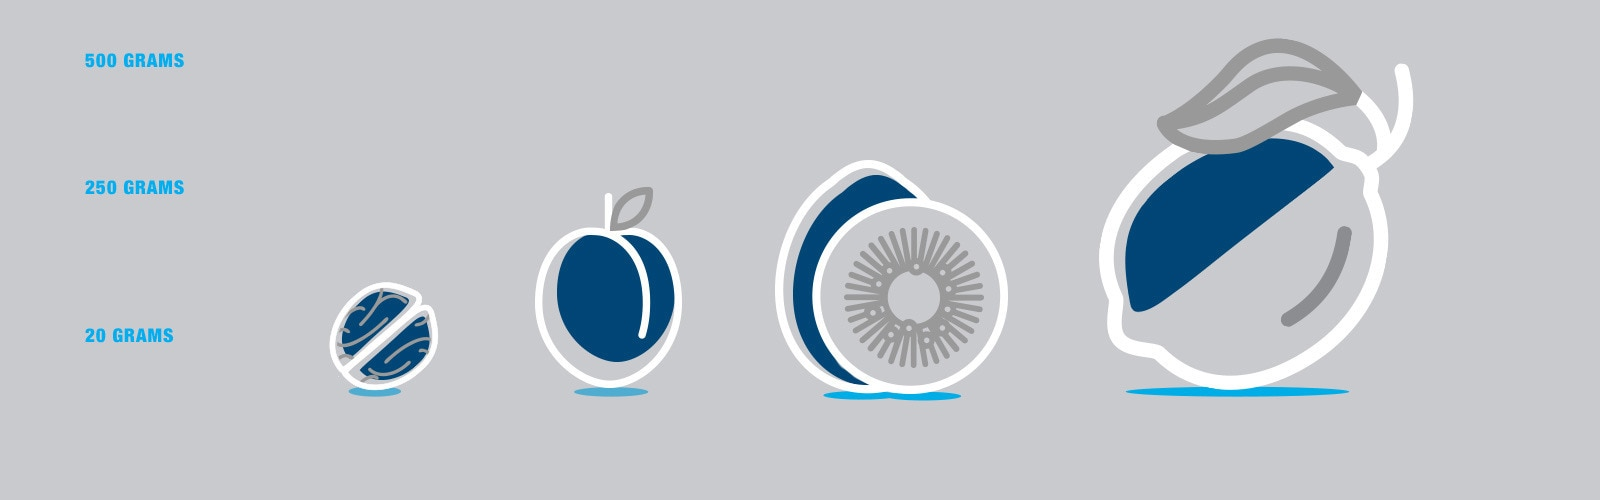 Illustrated icon of a walnut apricot kiwi and lemon with their weight on the left hand side